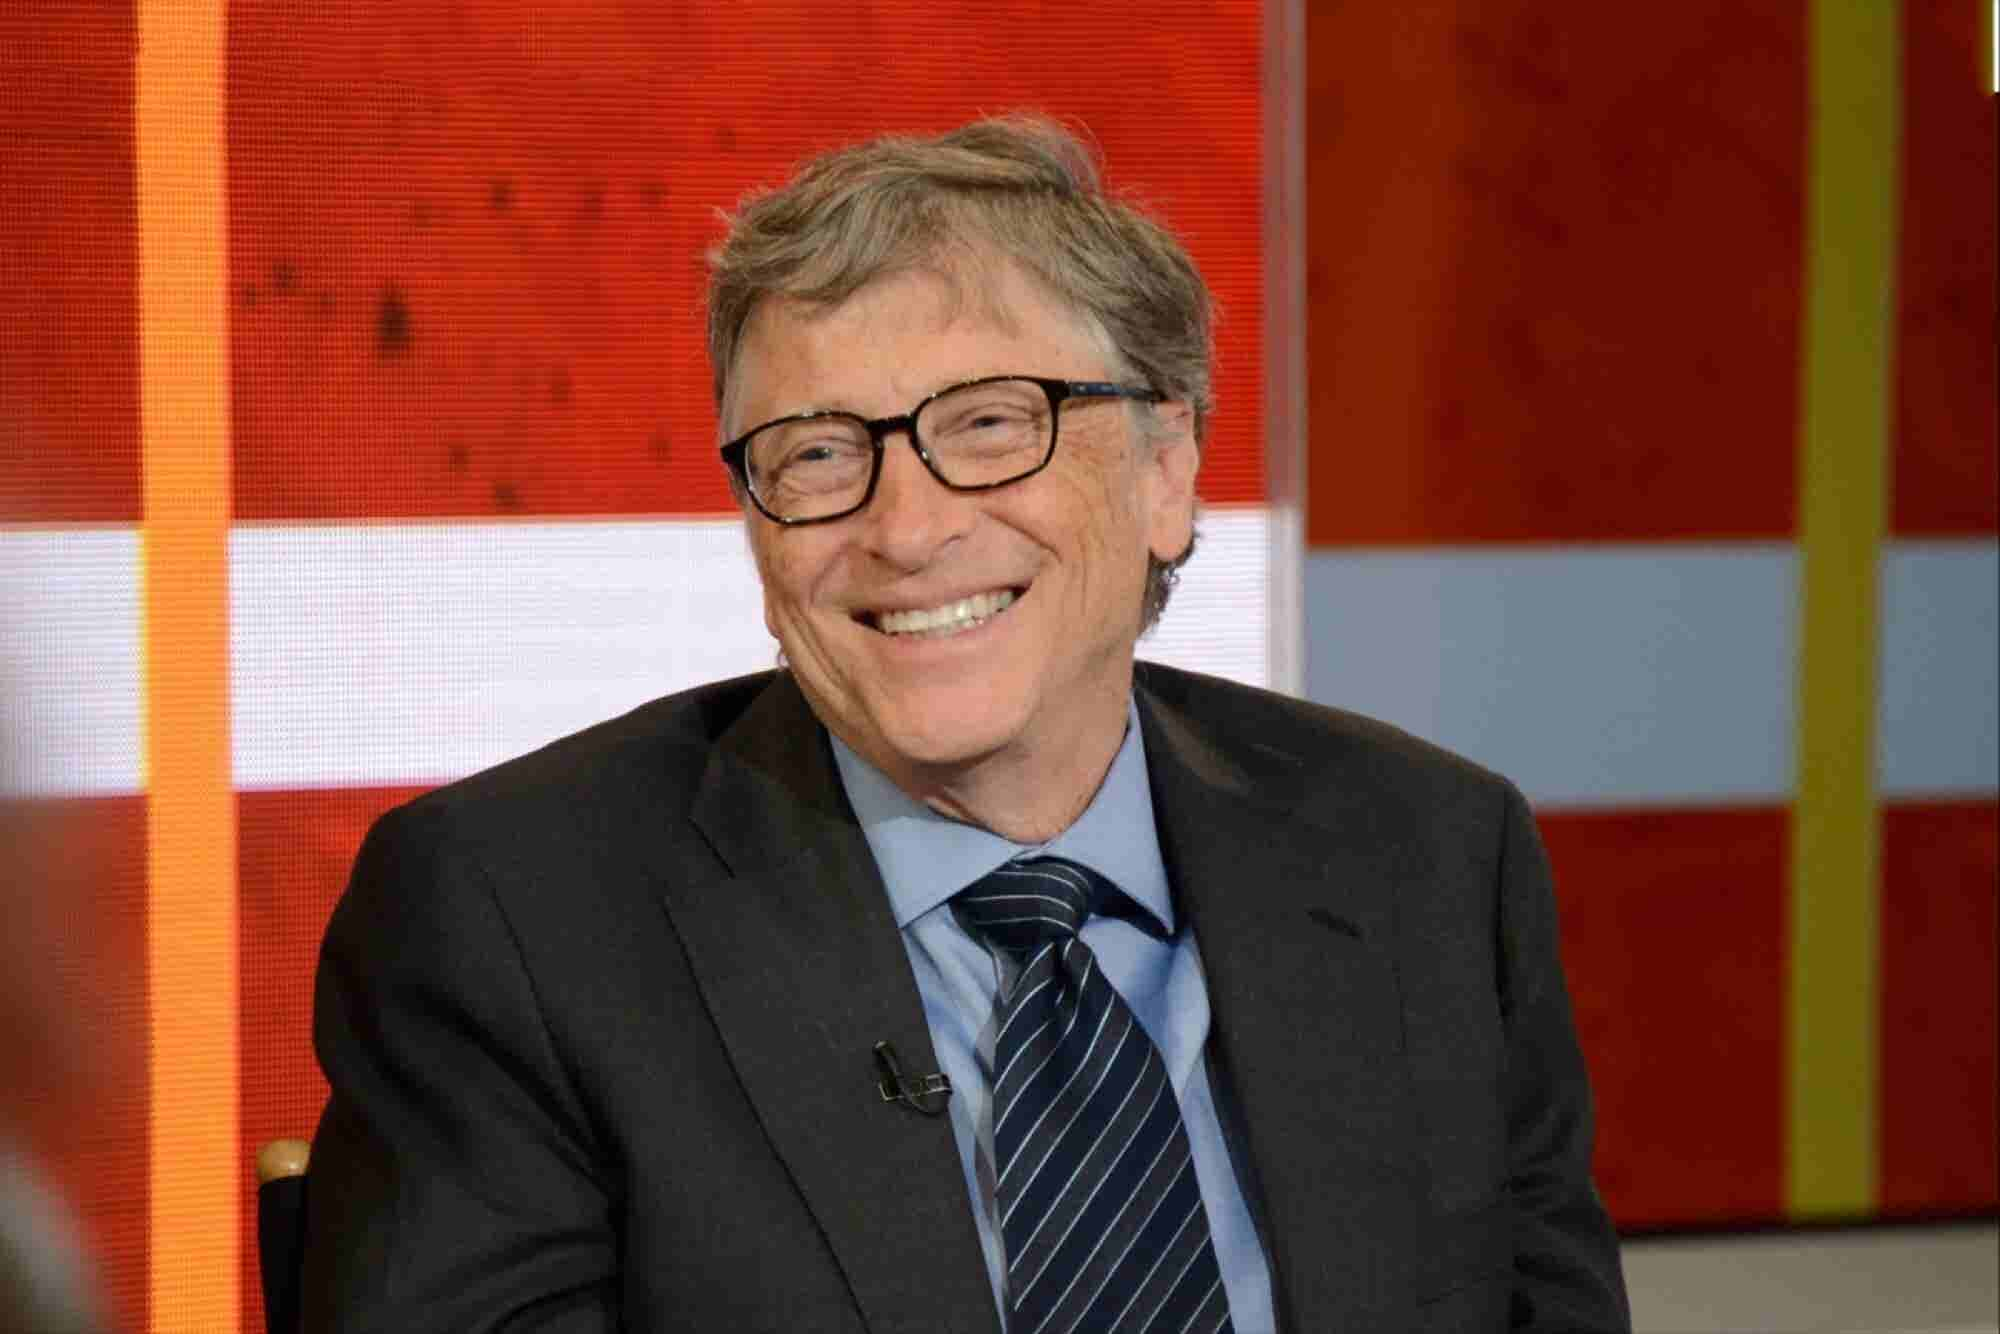 5 Life Lessons From Bill Gates, One of the Most Influential Philanthropists on Earth